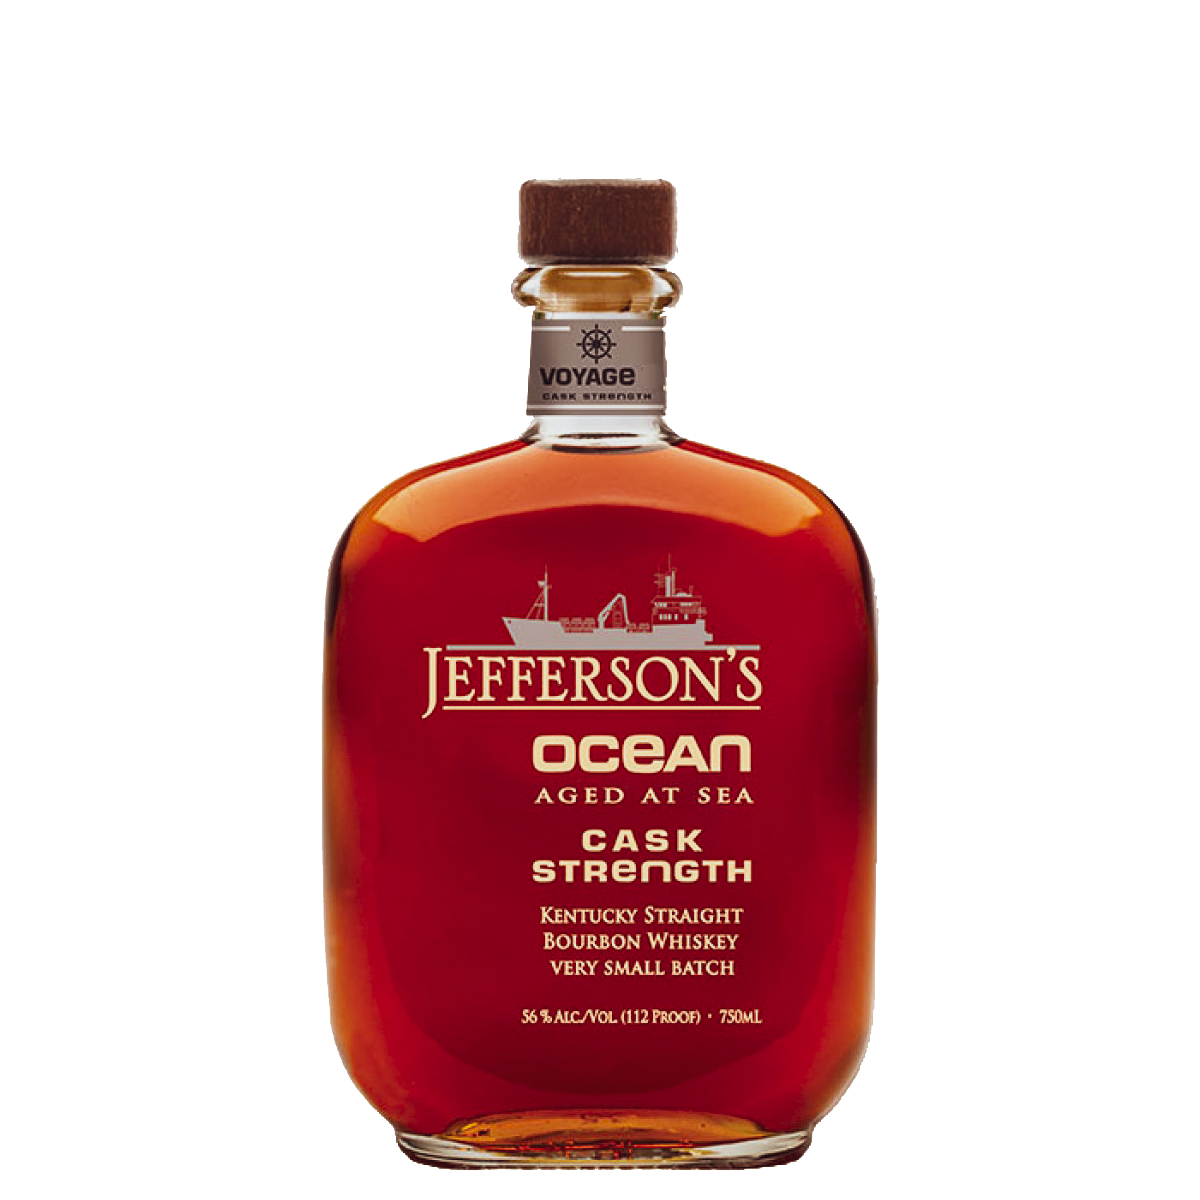 jefferson's ocean aged at sea straight bourbon cask strength